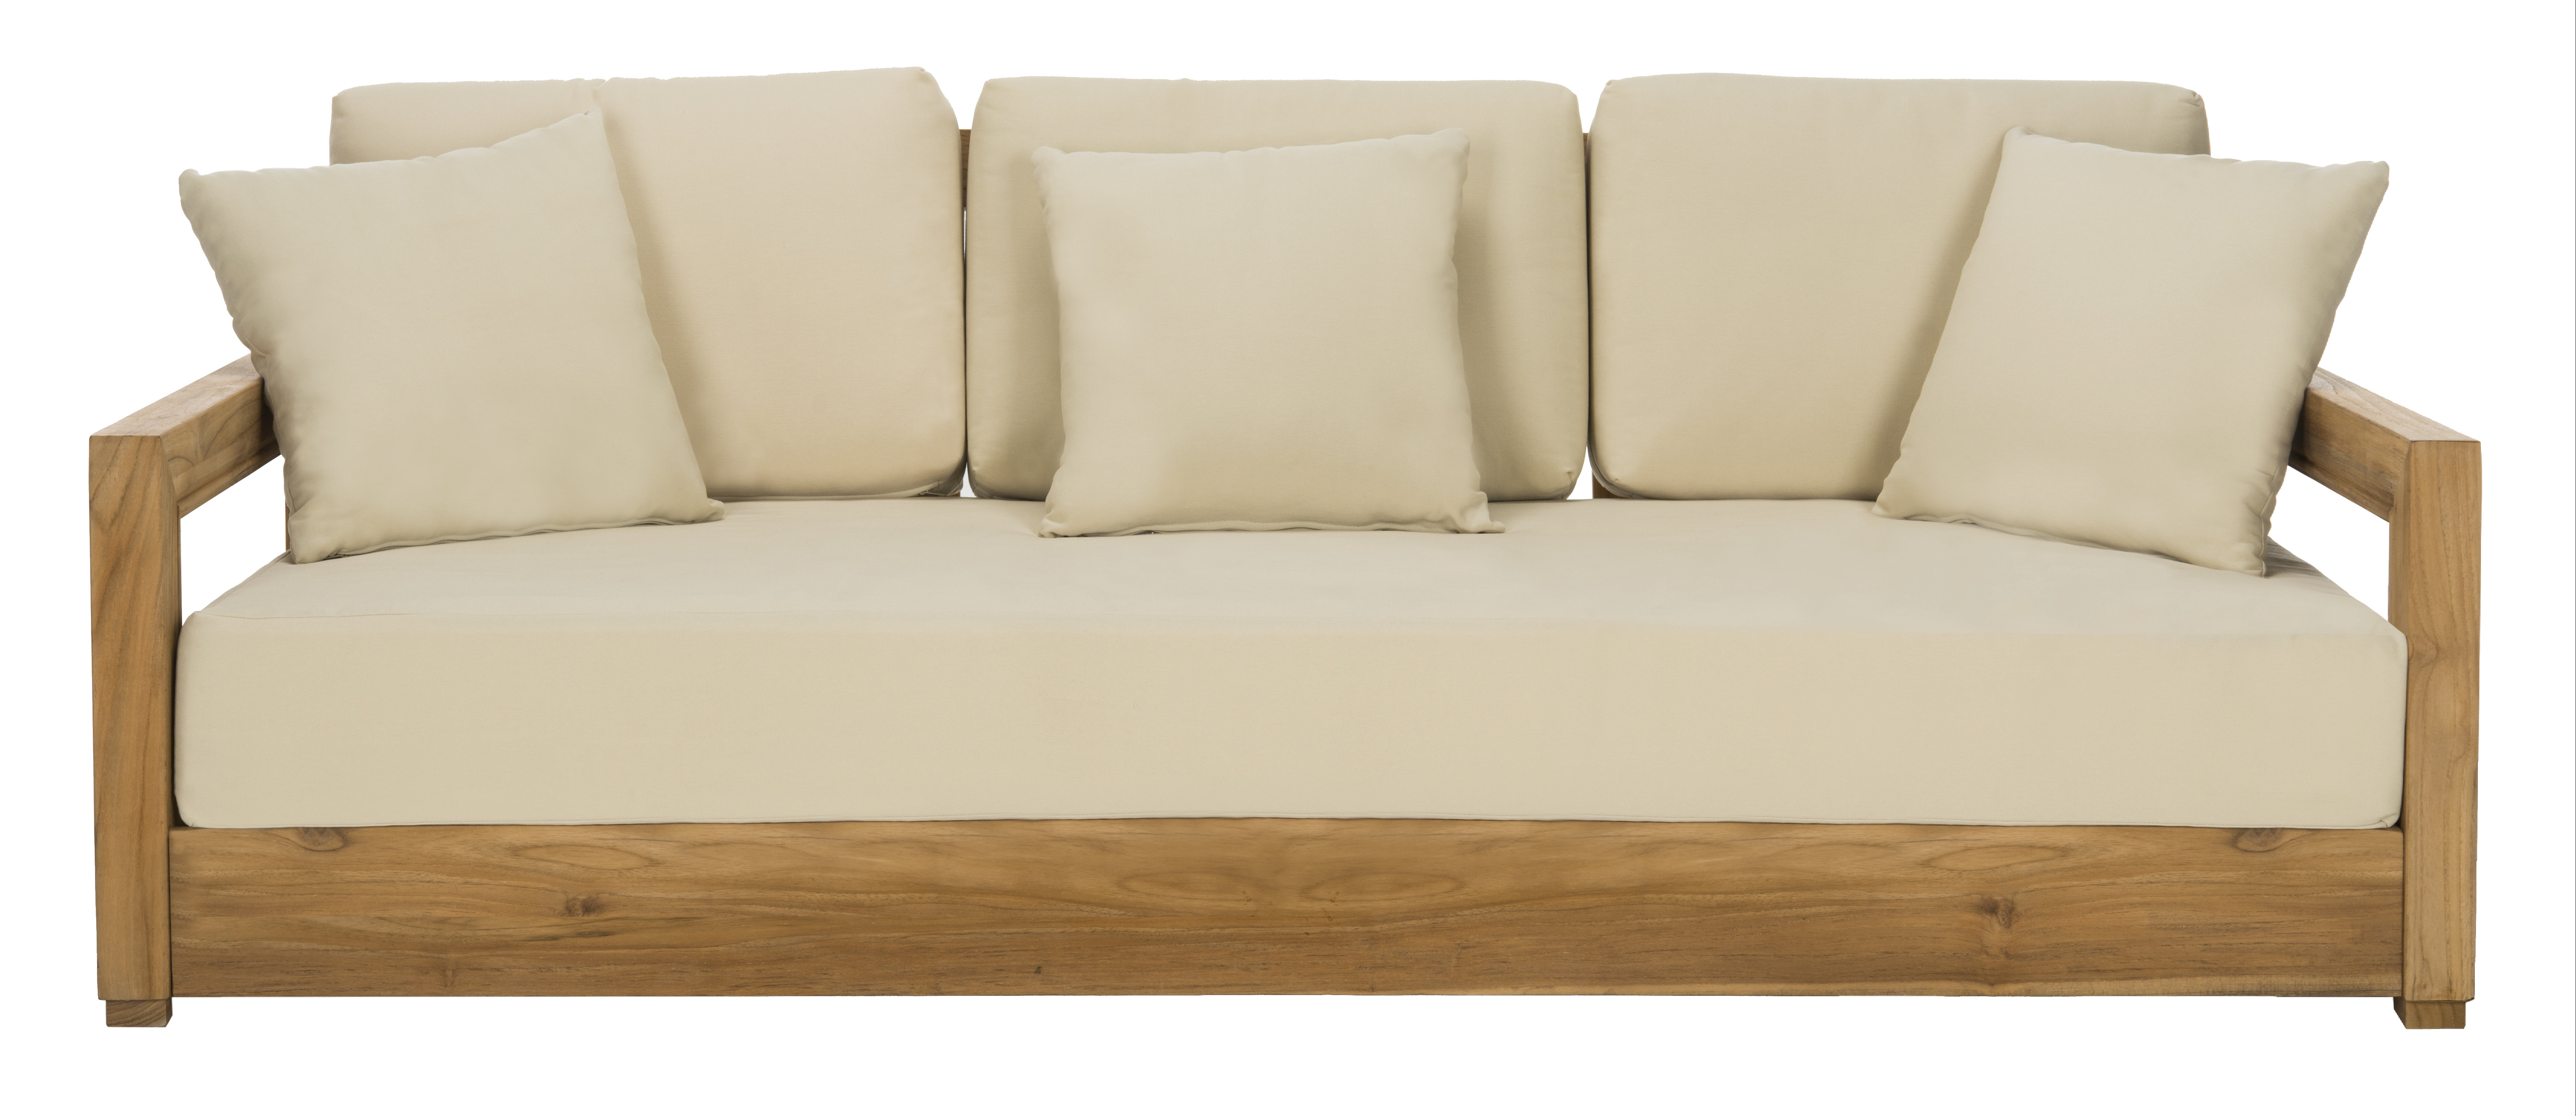 Modern Outdoor Sofas (View 20 of 20)